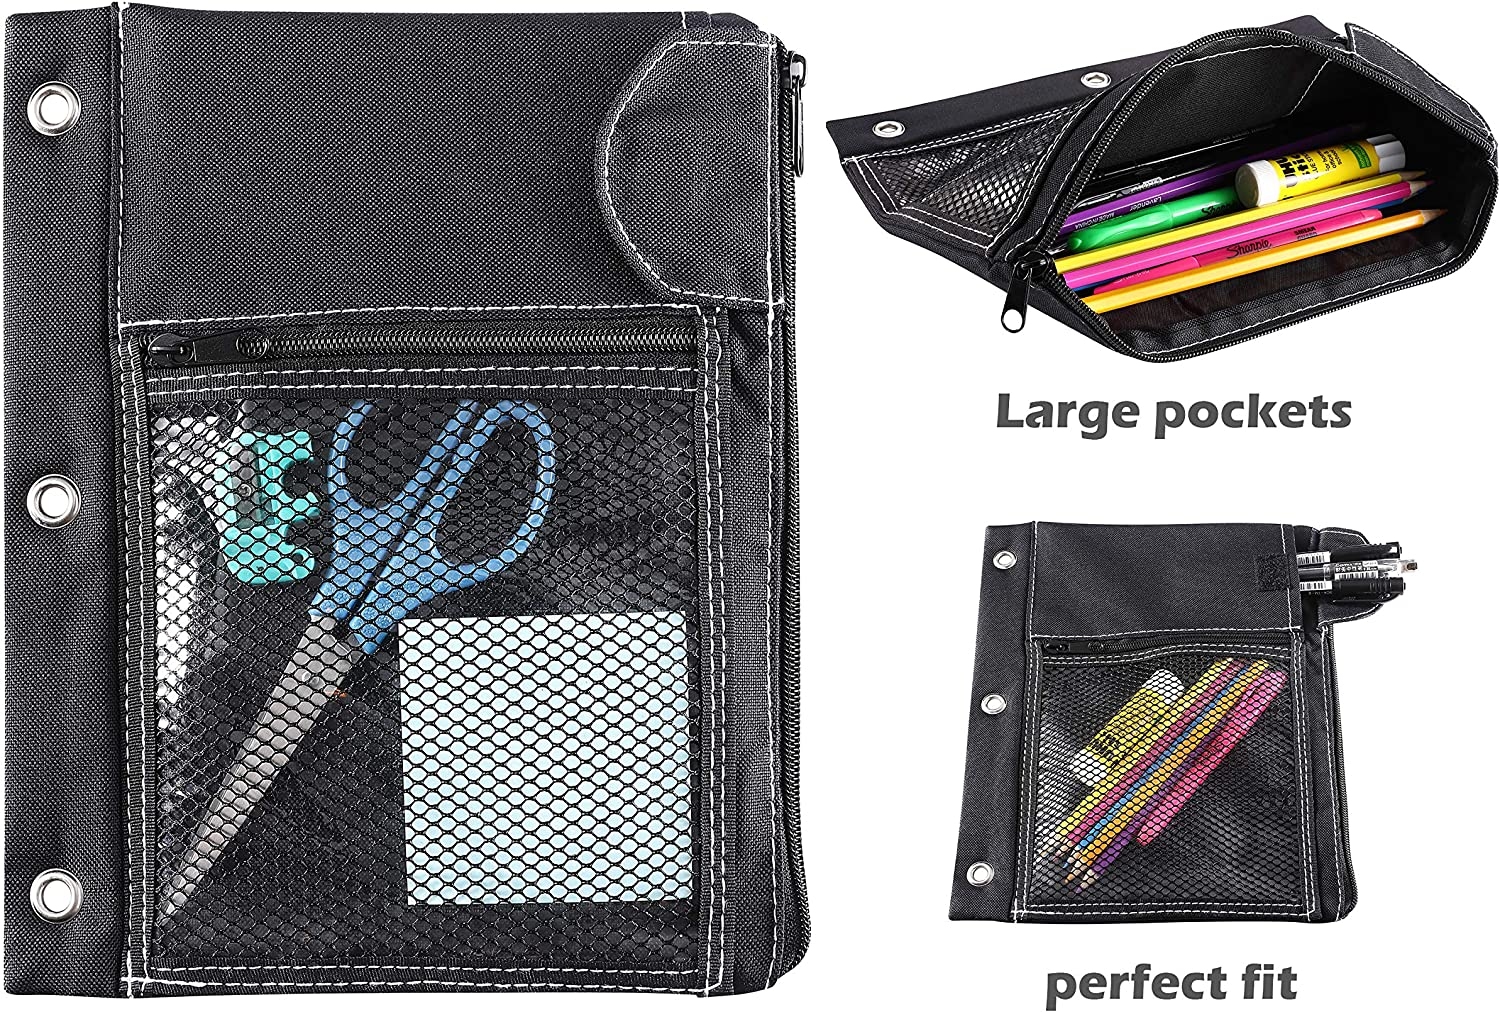 Black CAXXA 2 Pack 3 Ring Binder Pouch with Mesh Window and Zipper